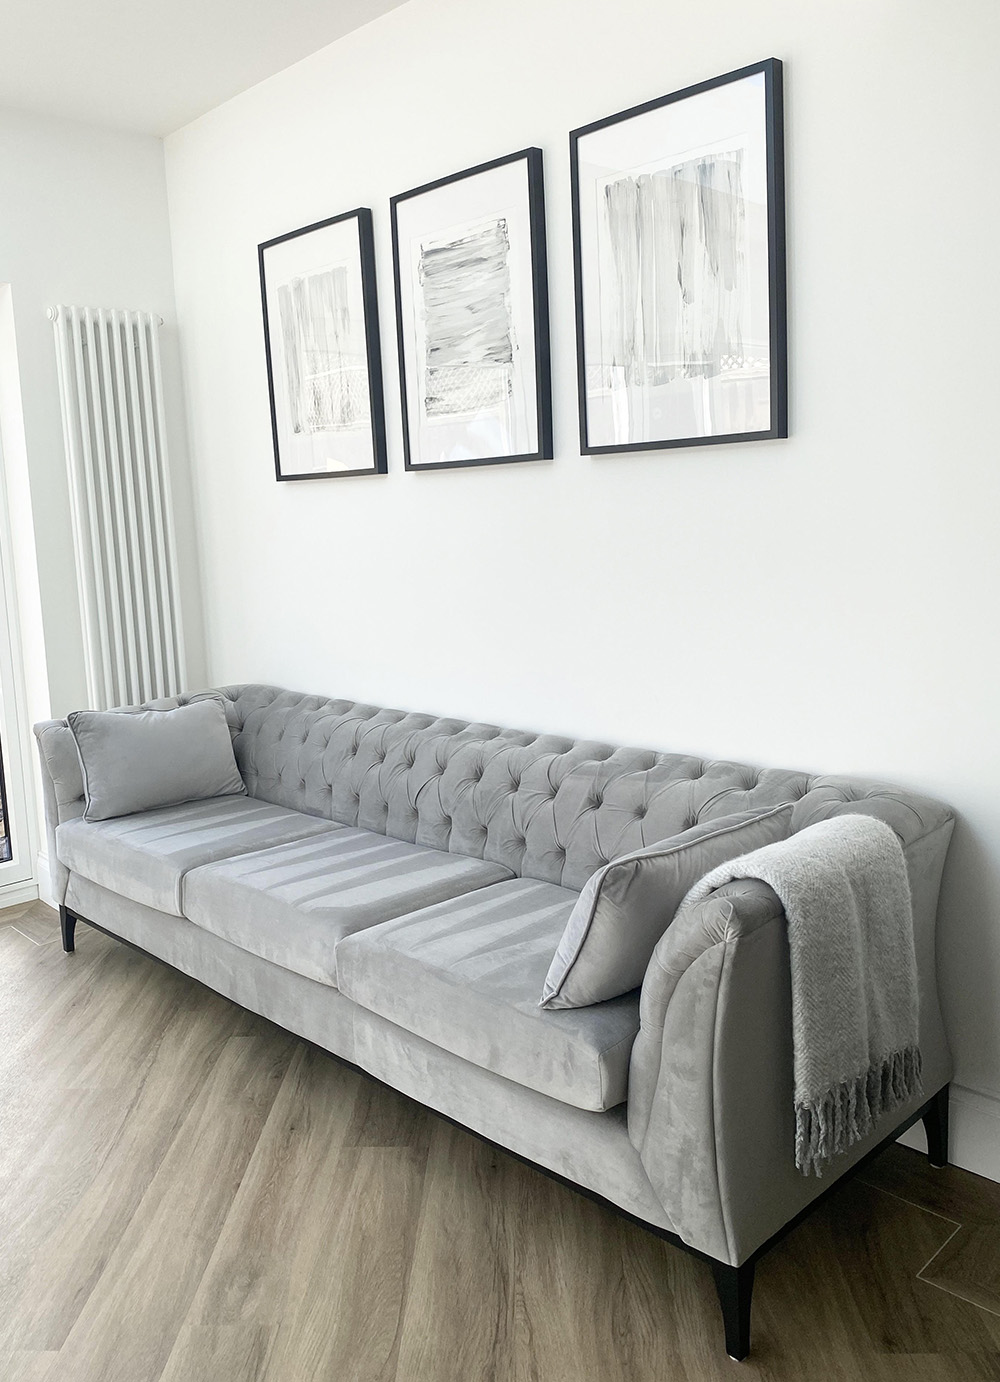 Grey Chesterfield Modern Wood three seater sofa with black wooden legs